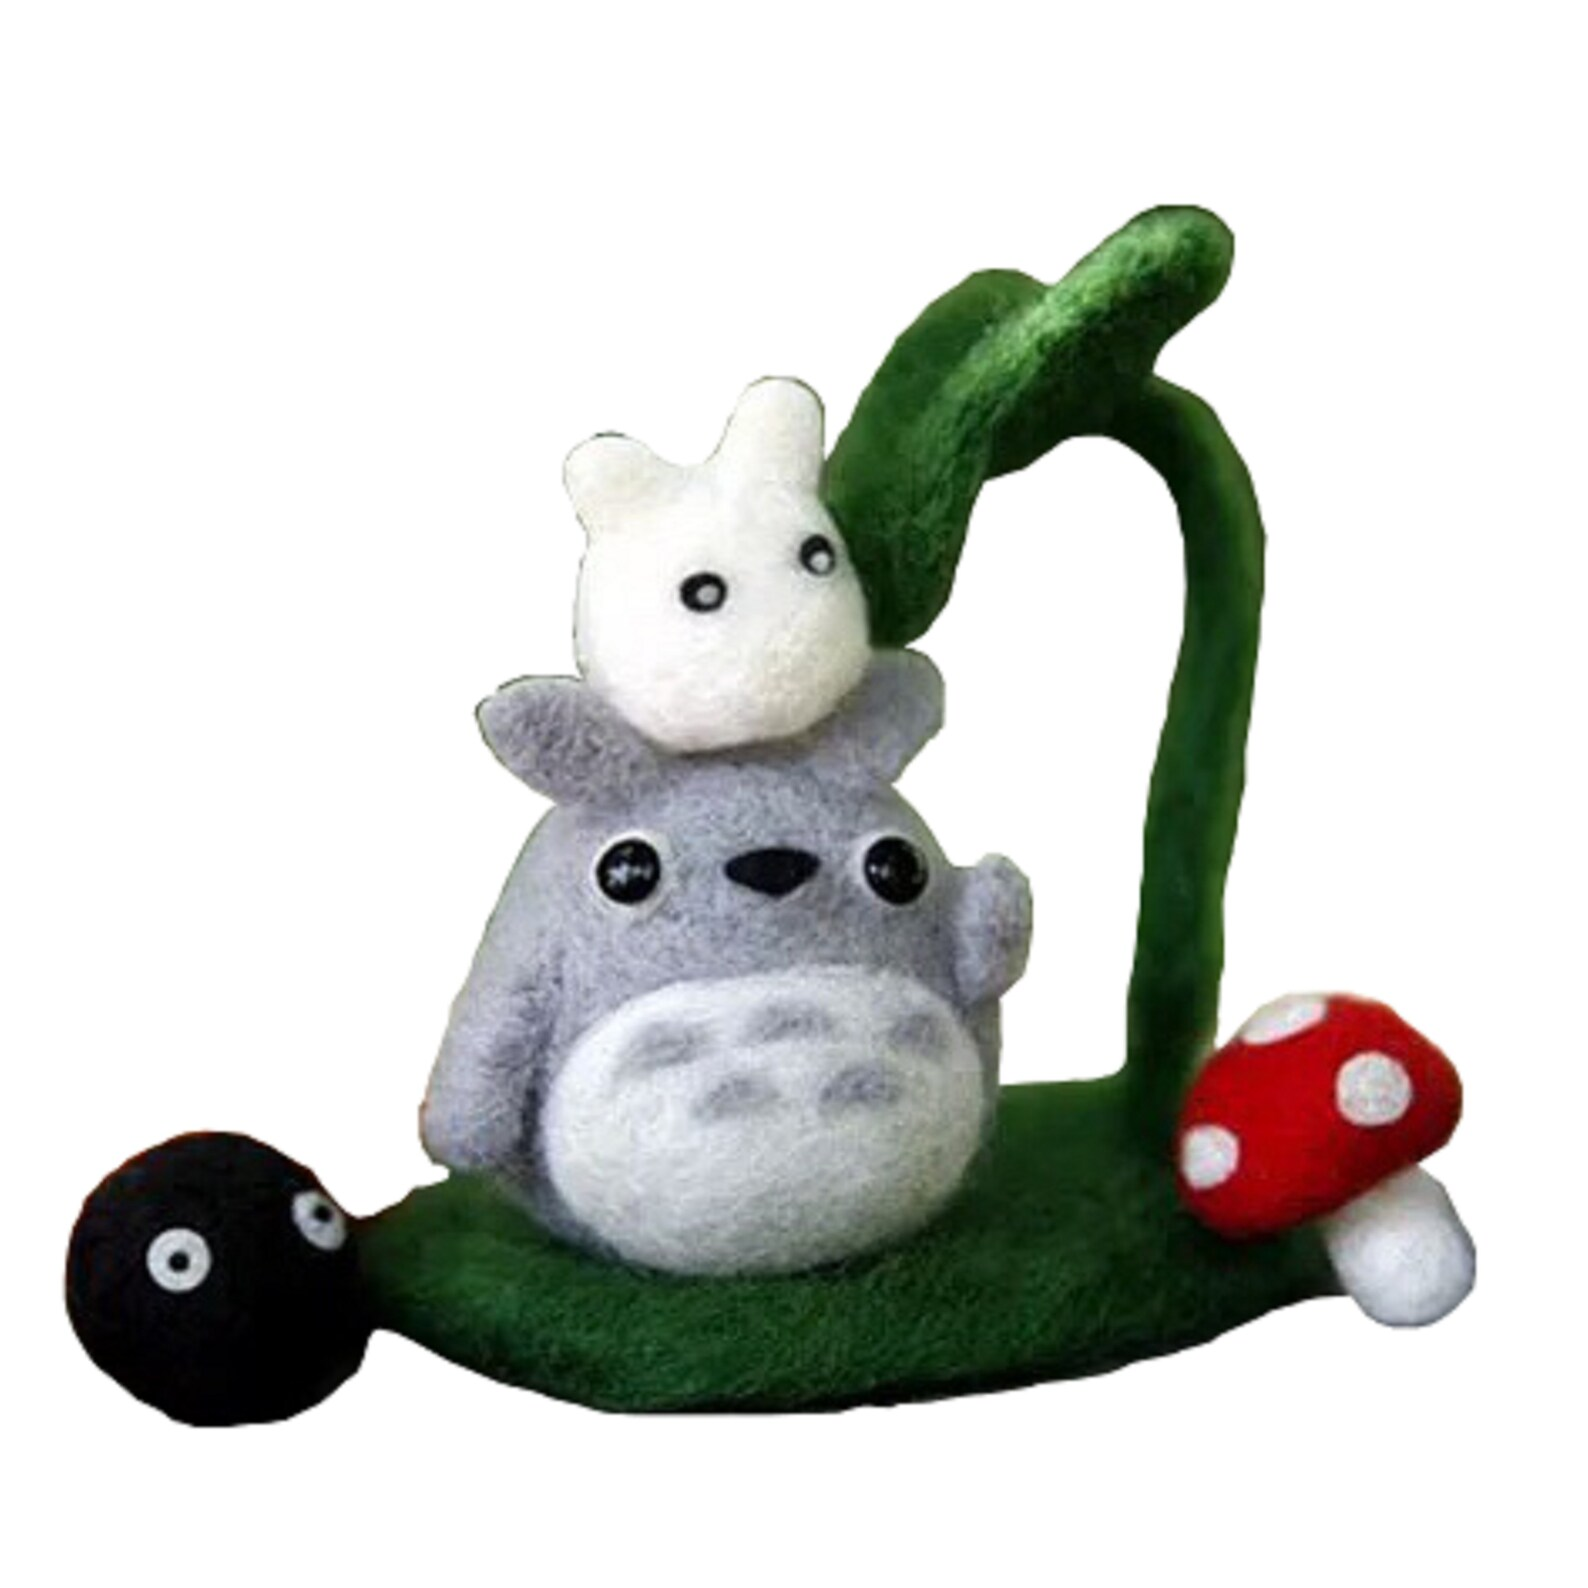 Wool Felting DIY Kit with Tools - Baby Totoro Friends (with English Instructions)